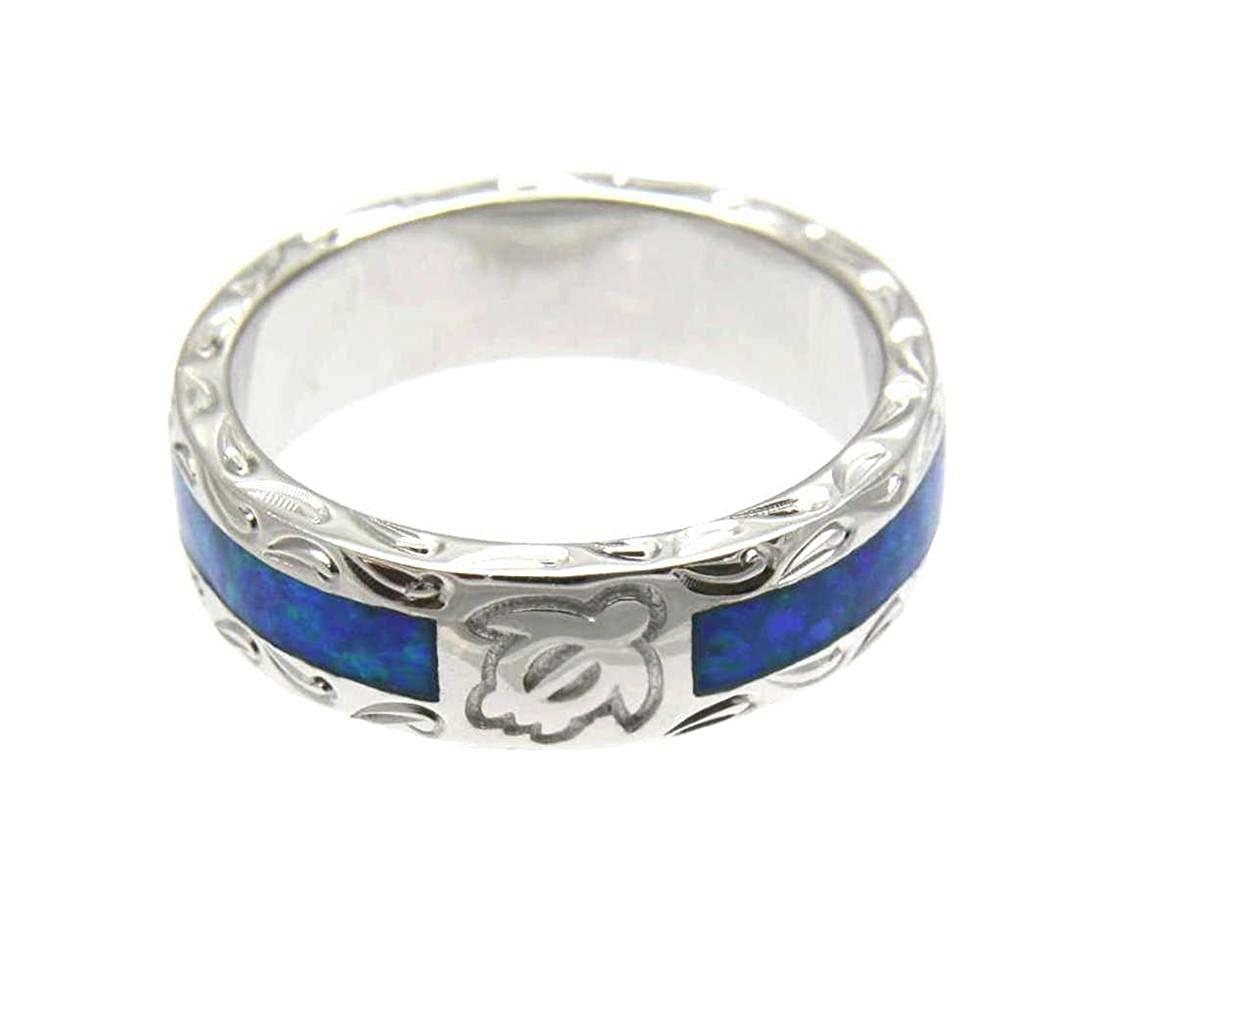 Arthurs Jewelry Sterling Silver 925 Synthetic Opal Hawaiian Honu Turtle Eternity Wedding Band Ring Unisex Size 5 to 12